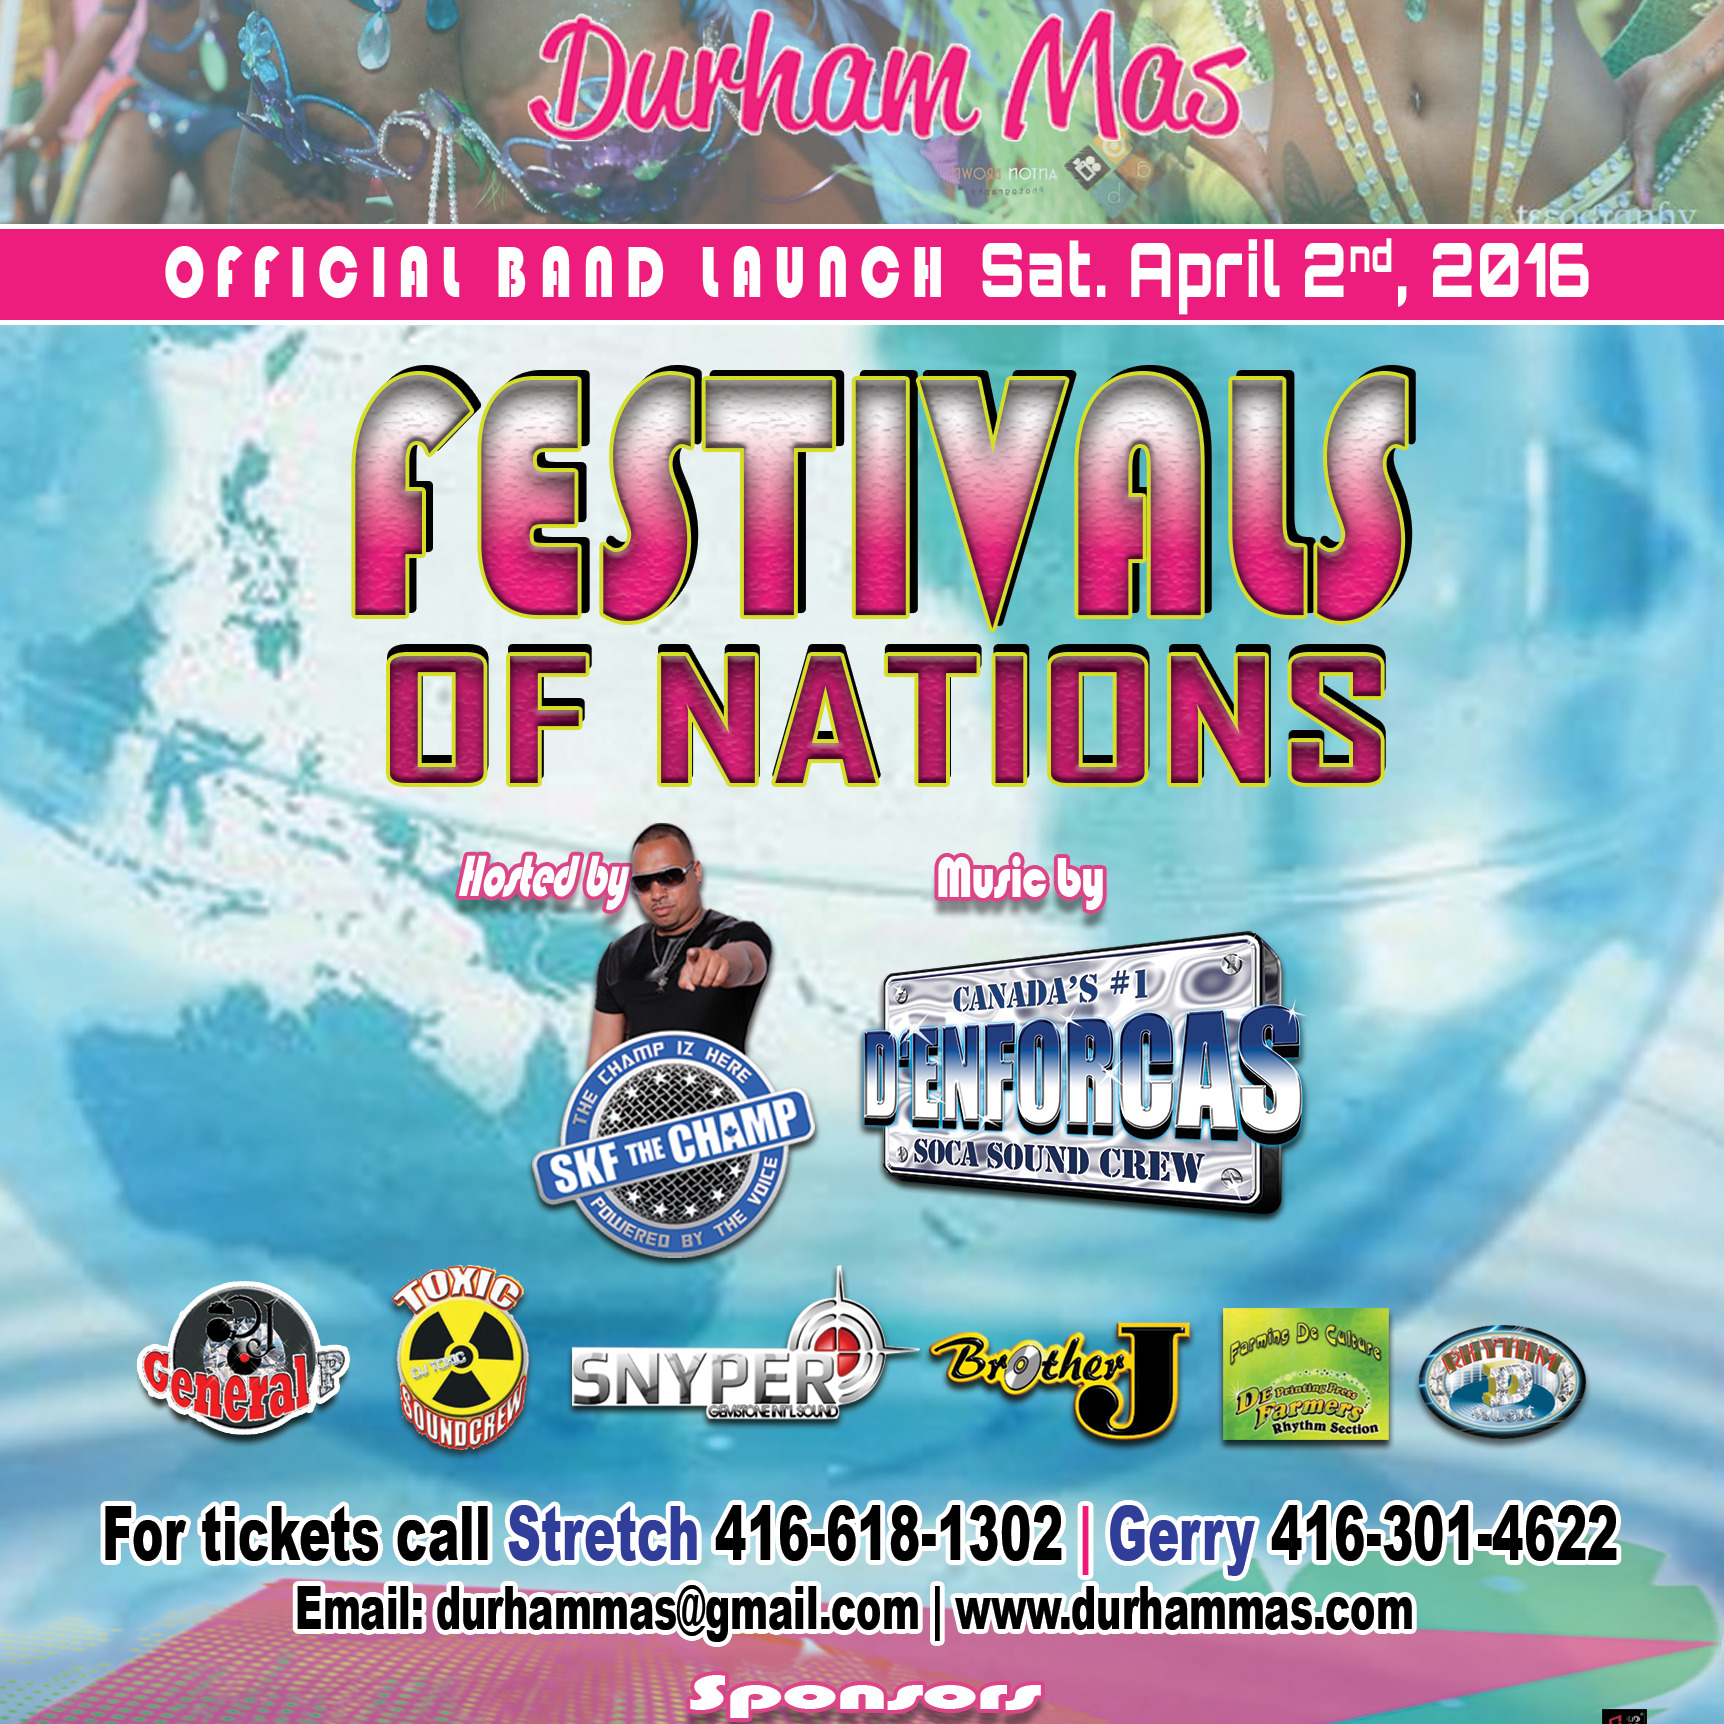 FESTIVALS OF NATIONS | DURHAM MAS OFFICIAL BAND LAUNCH